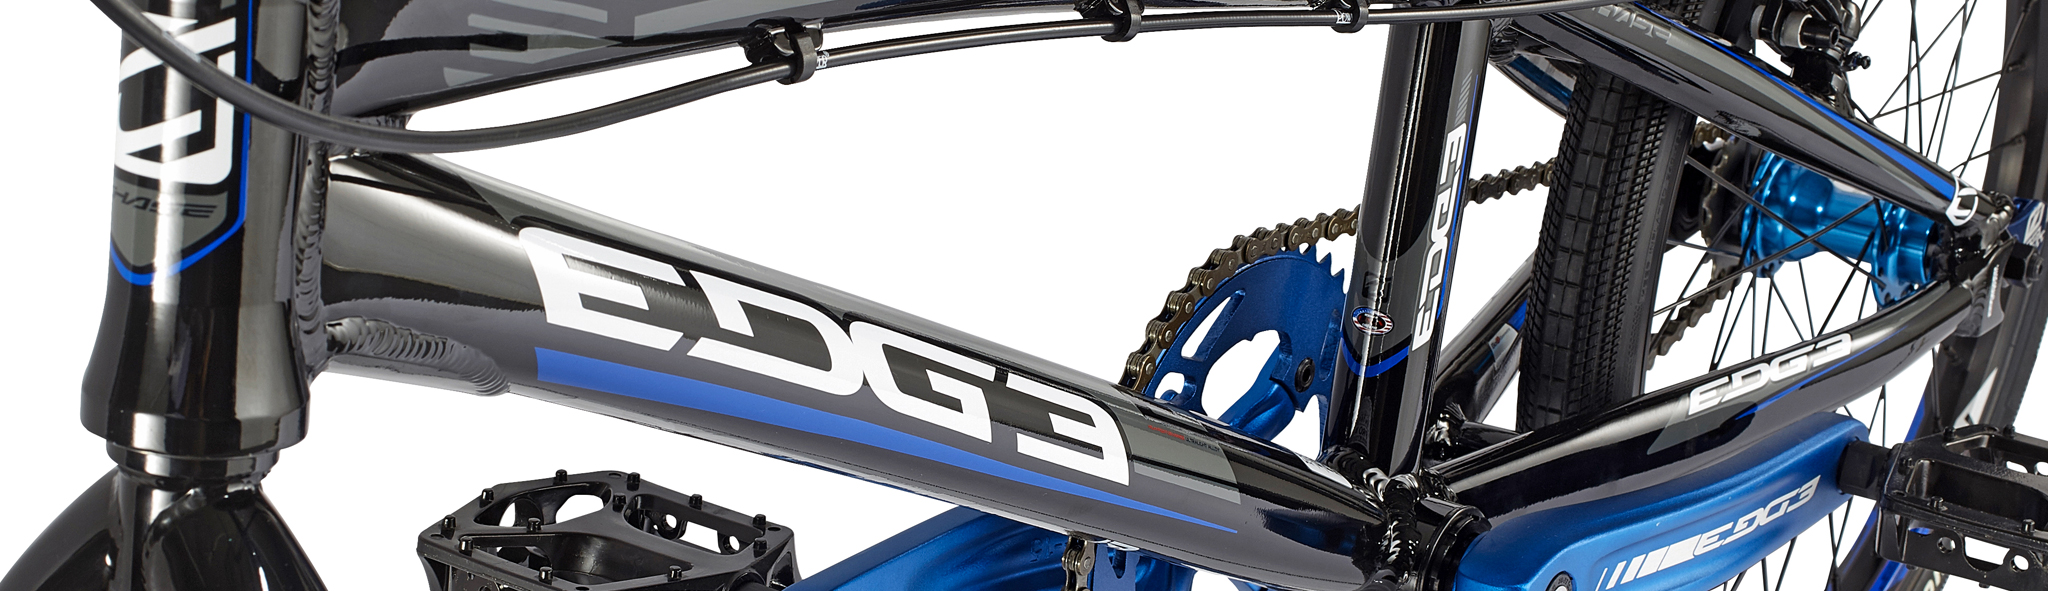 2017 Chase Edge bikes are here!